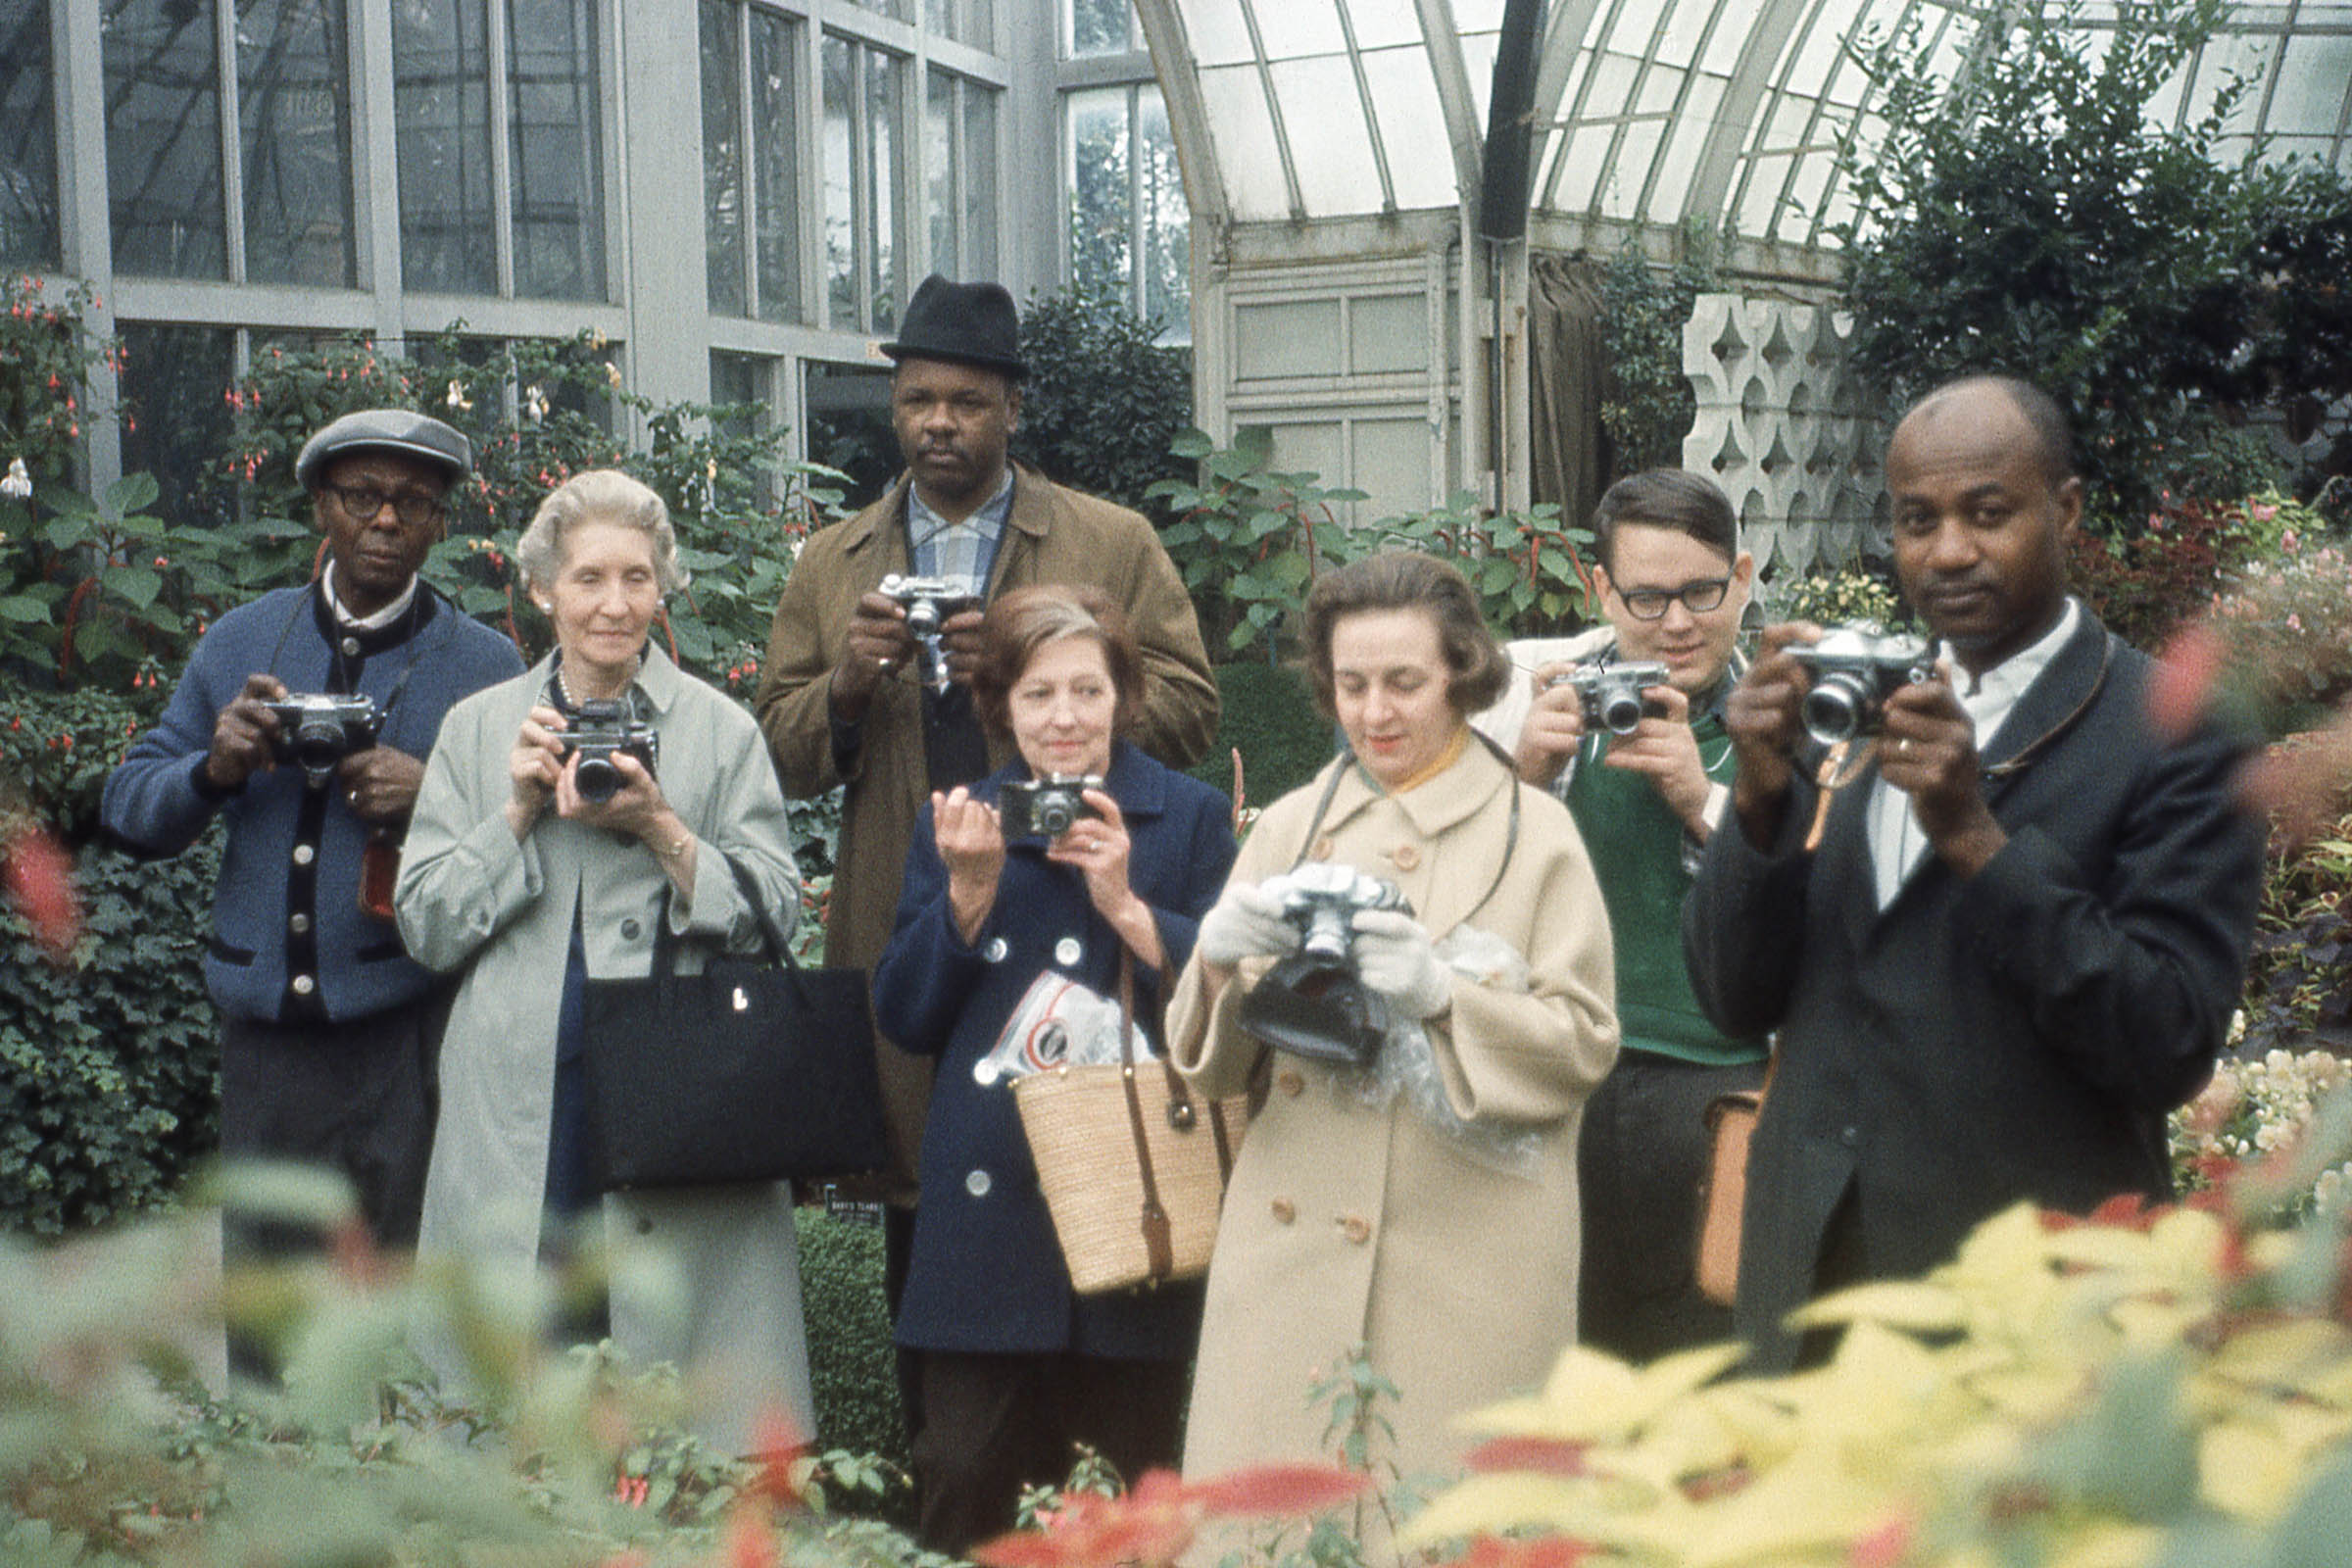 Group portrait with cameras at Belle Isle Conservatory, Detroit, around 1970. Attributed to Arthur Stross. Courtesy DIA.